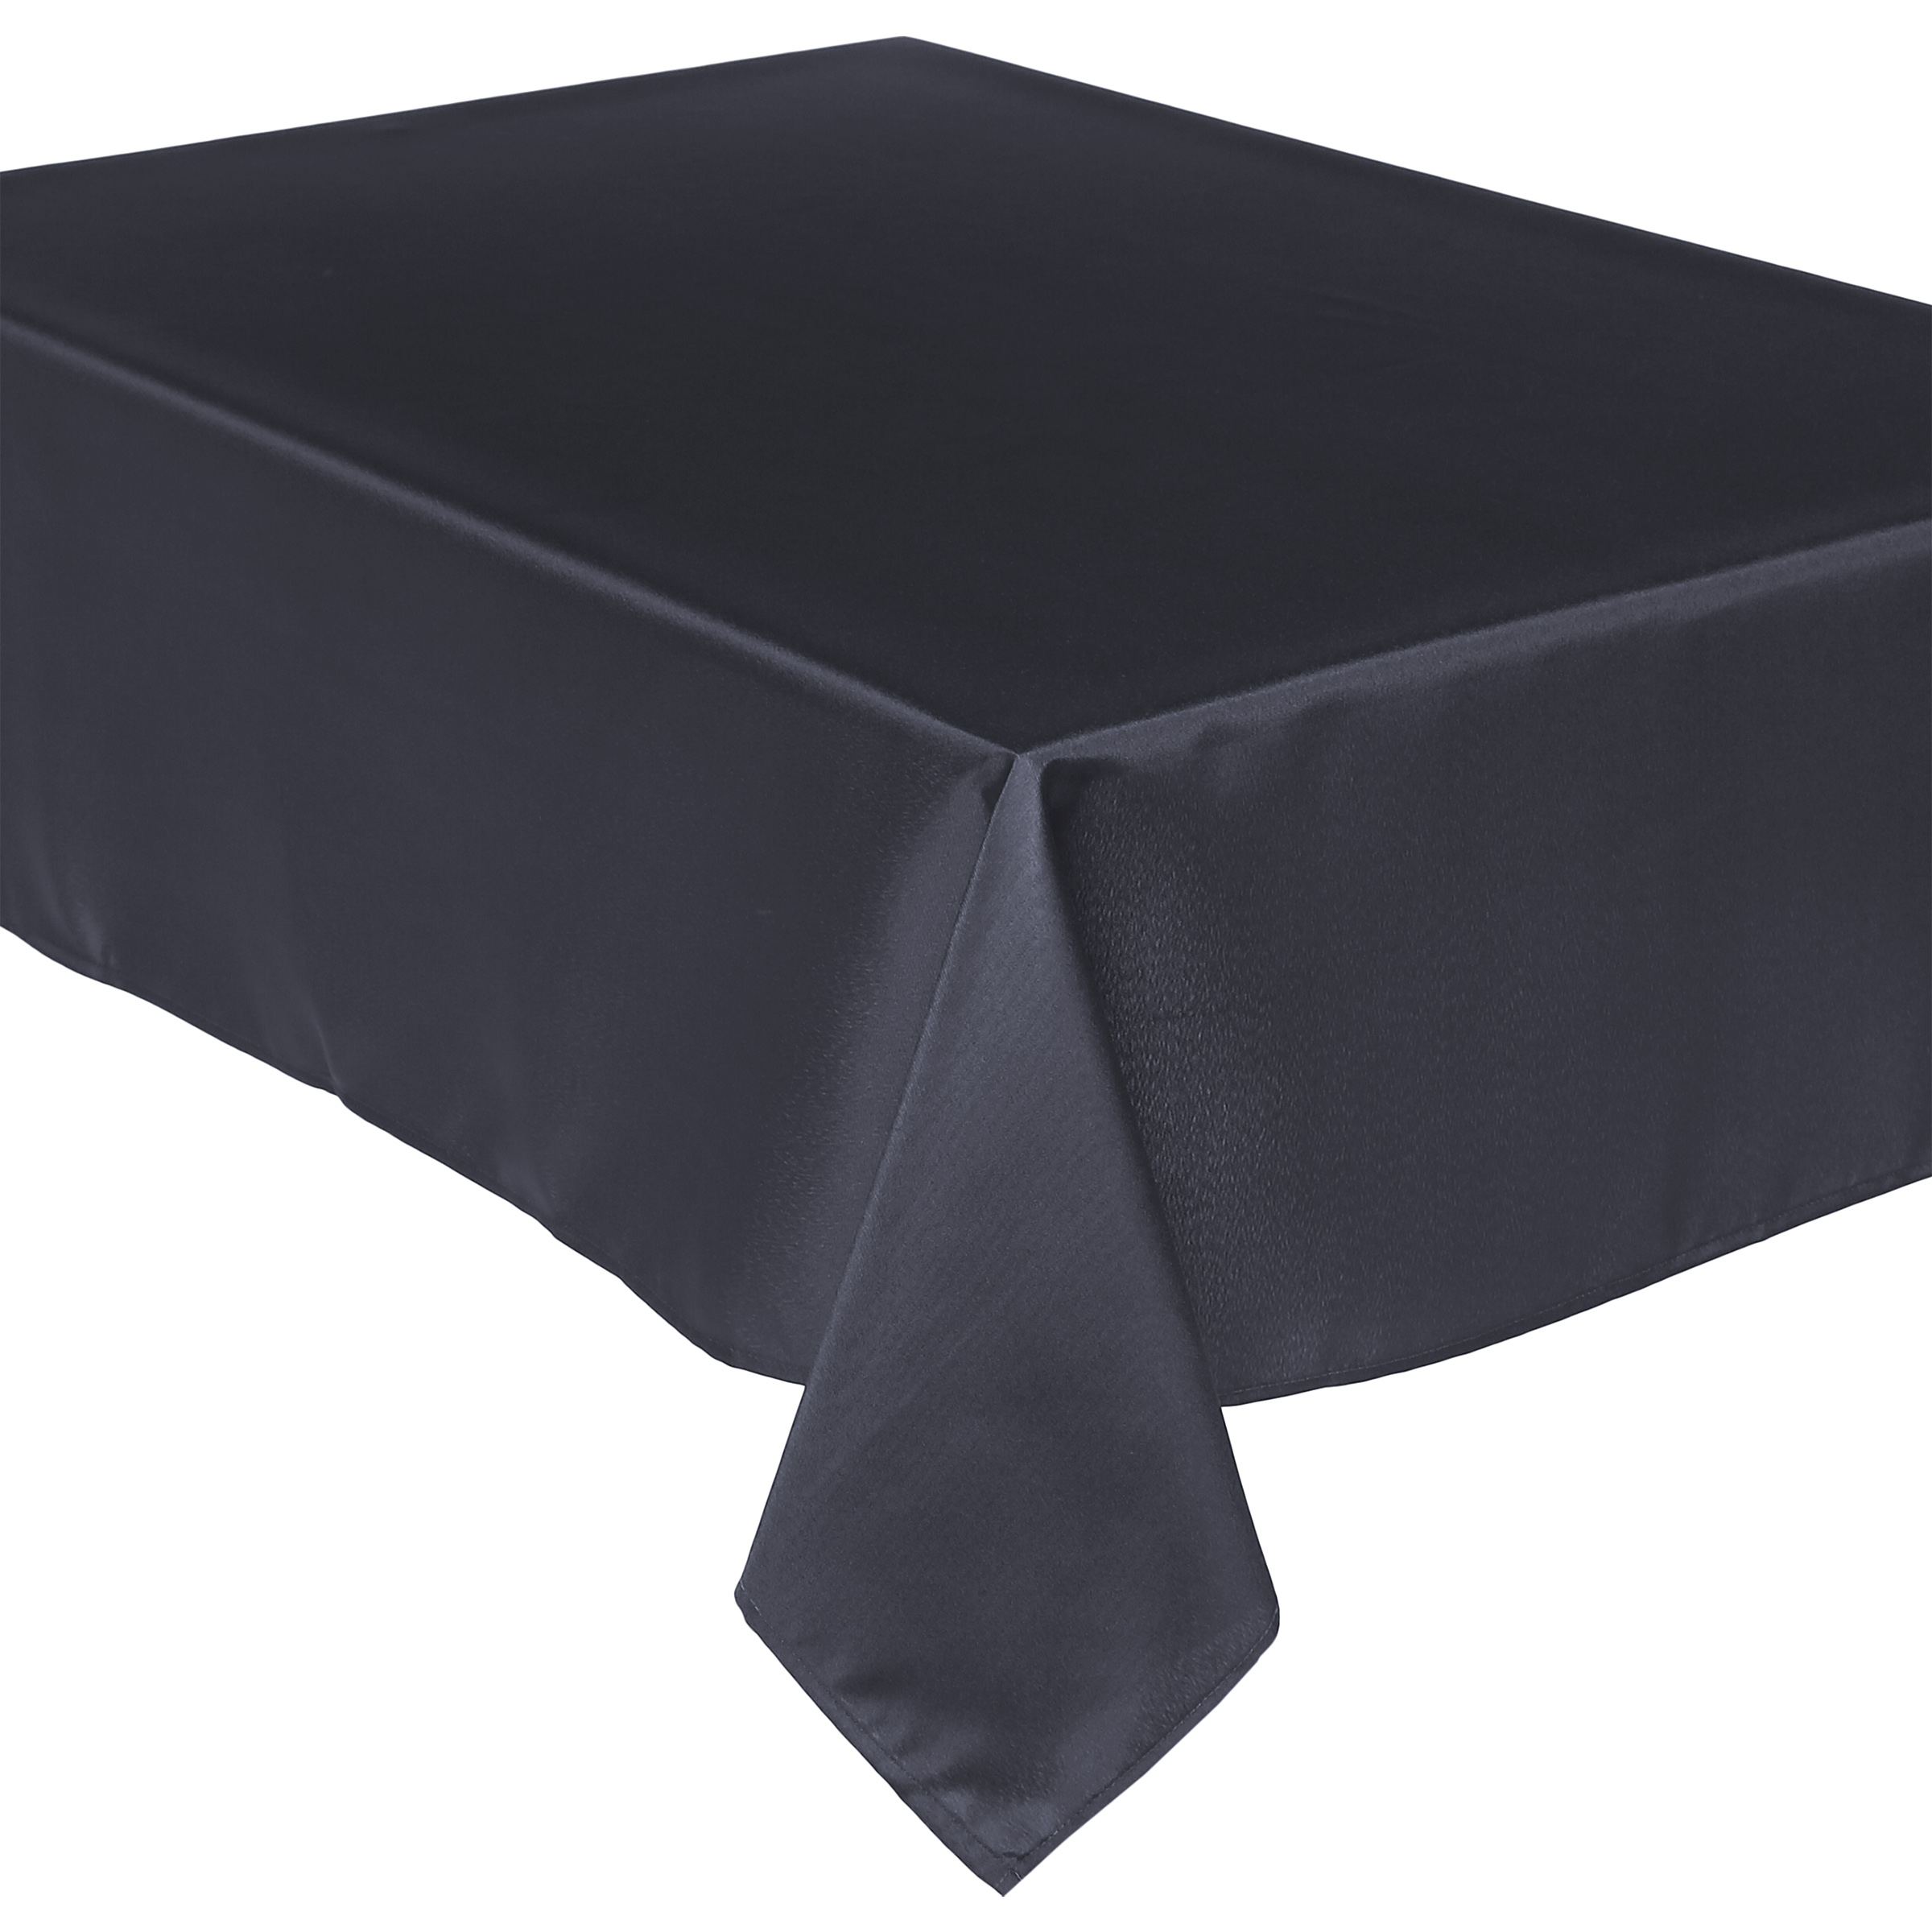 ANTI-STAIN TABLECLOTH 140X240CM GREY